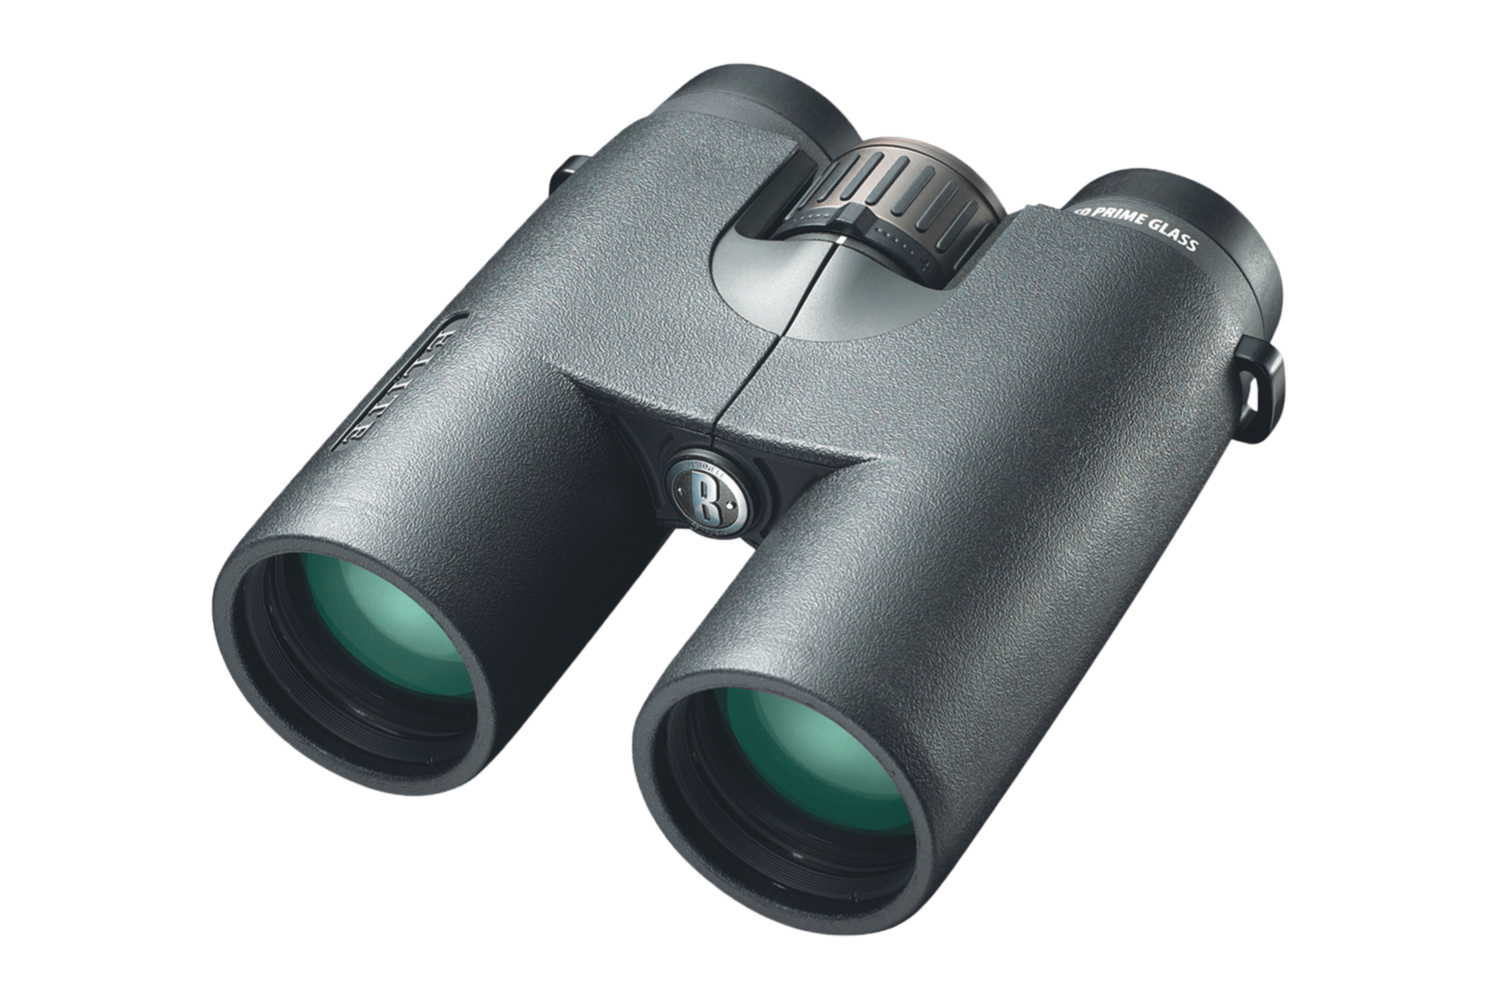 Бинокль Bushnell ELITE 8x42 бинокль yukon point 8x42